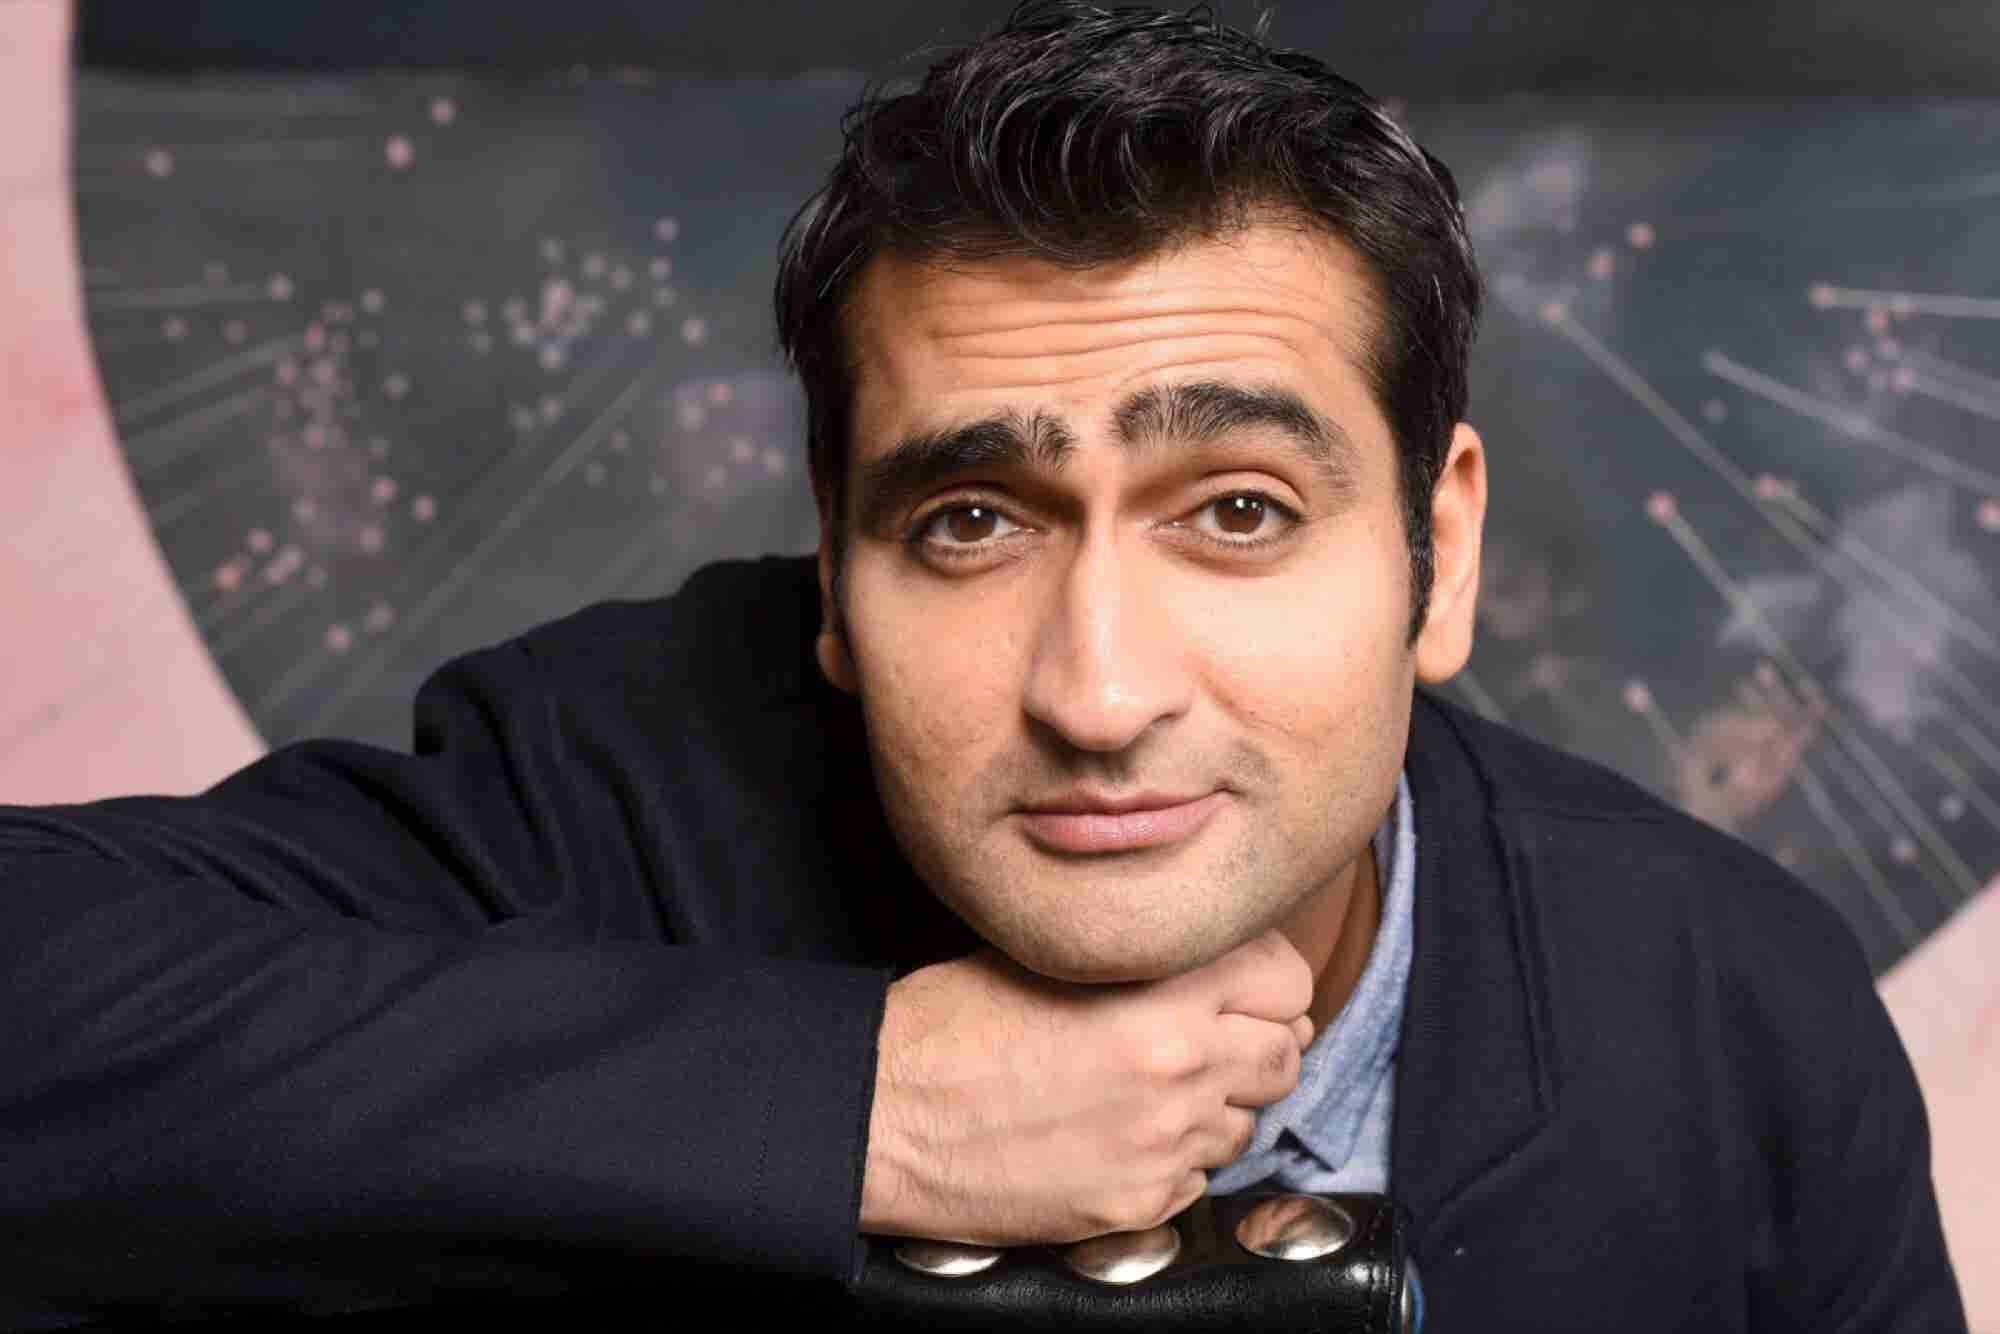 Silicon Valley's' Kumail Nanjiani on Never Playing It Safe